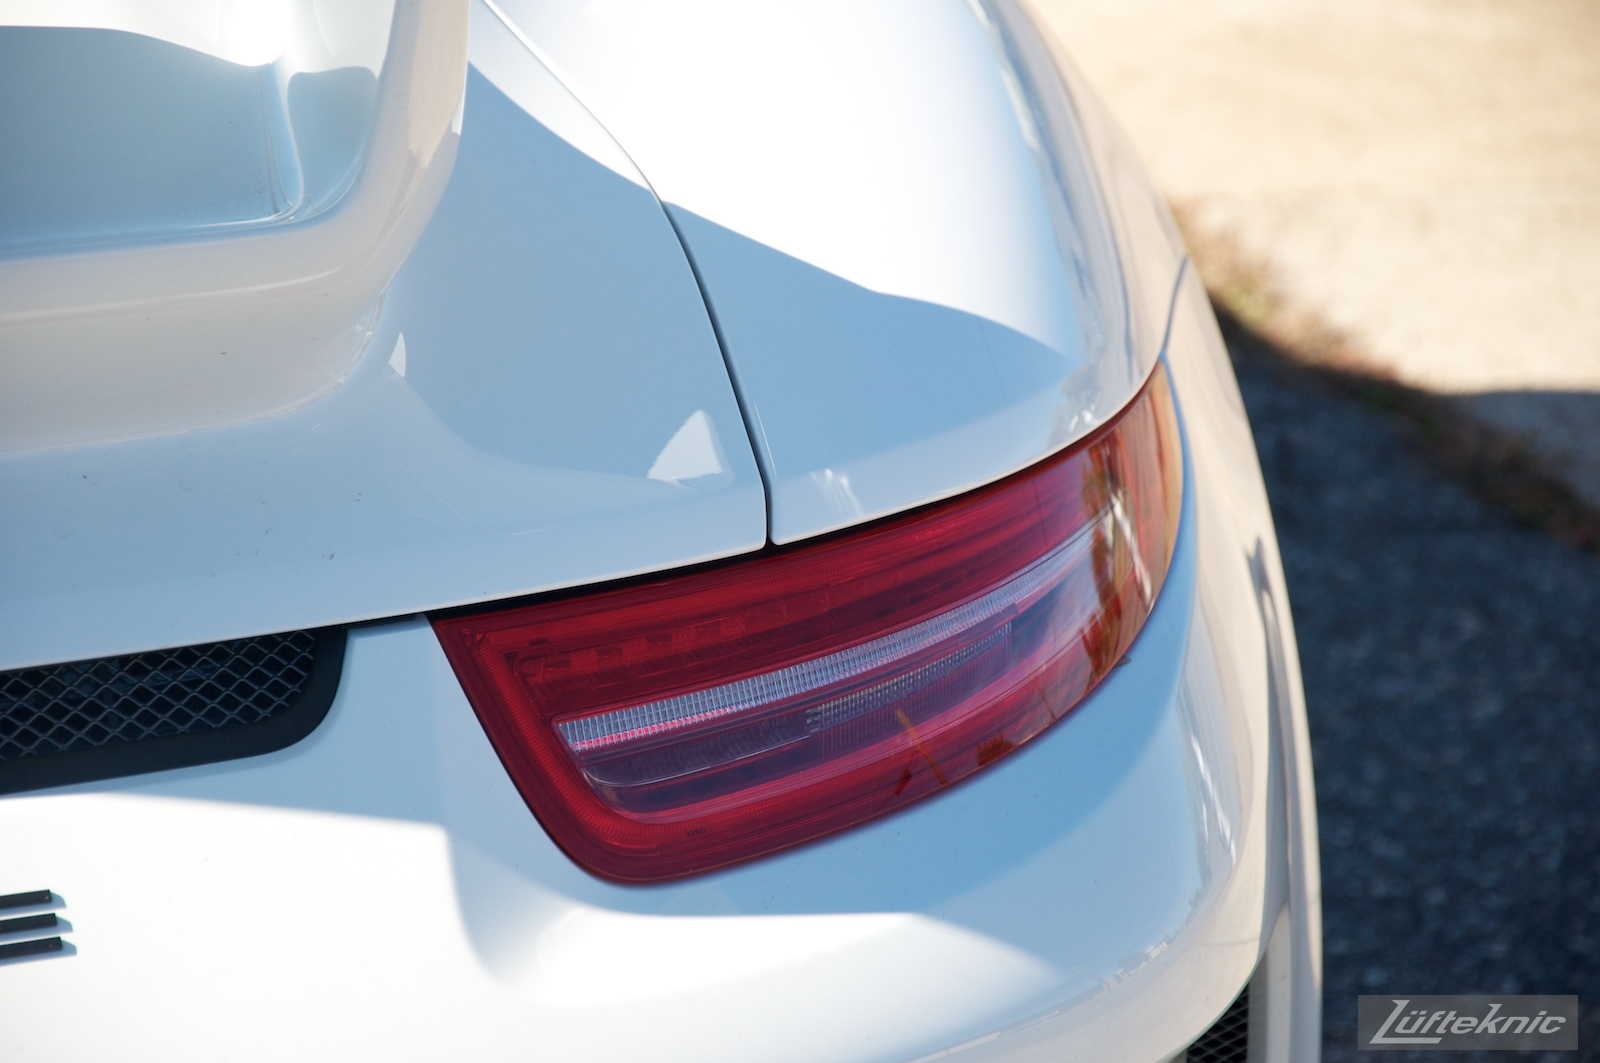 Rear taillight detail picture on the Lüfteknic Porsche 991 GT3